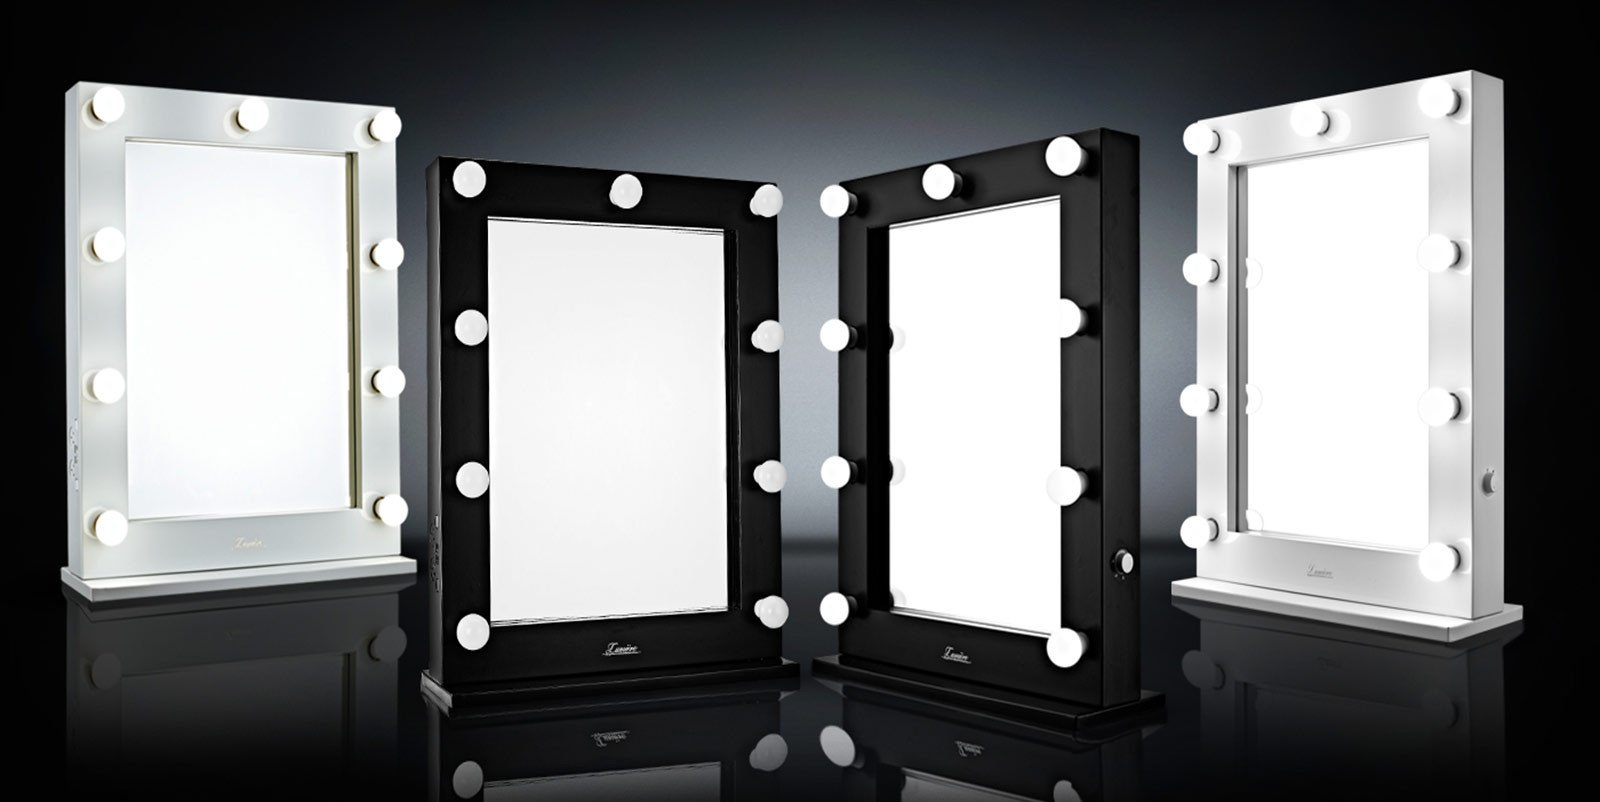 Lighted Makeup Mirrors Illuminated Hollywood Vanity